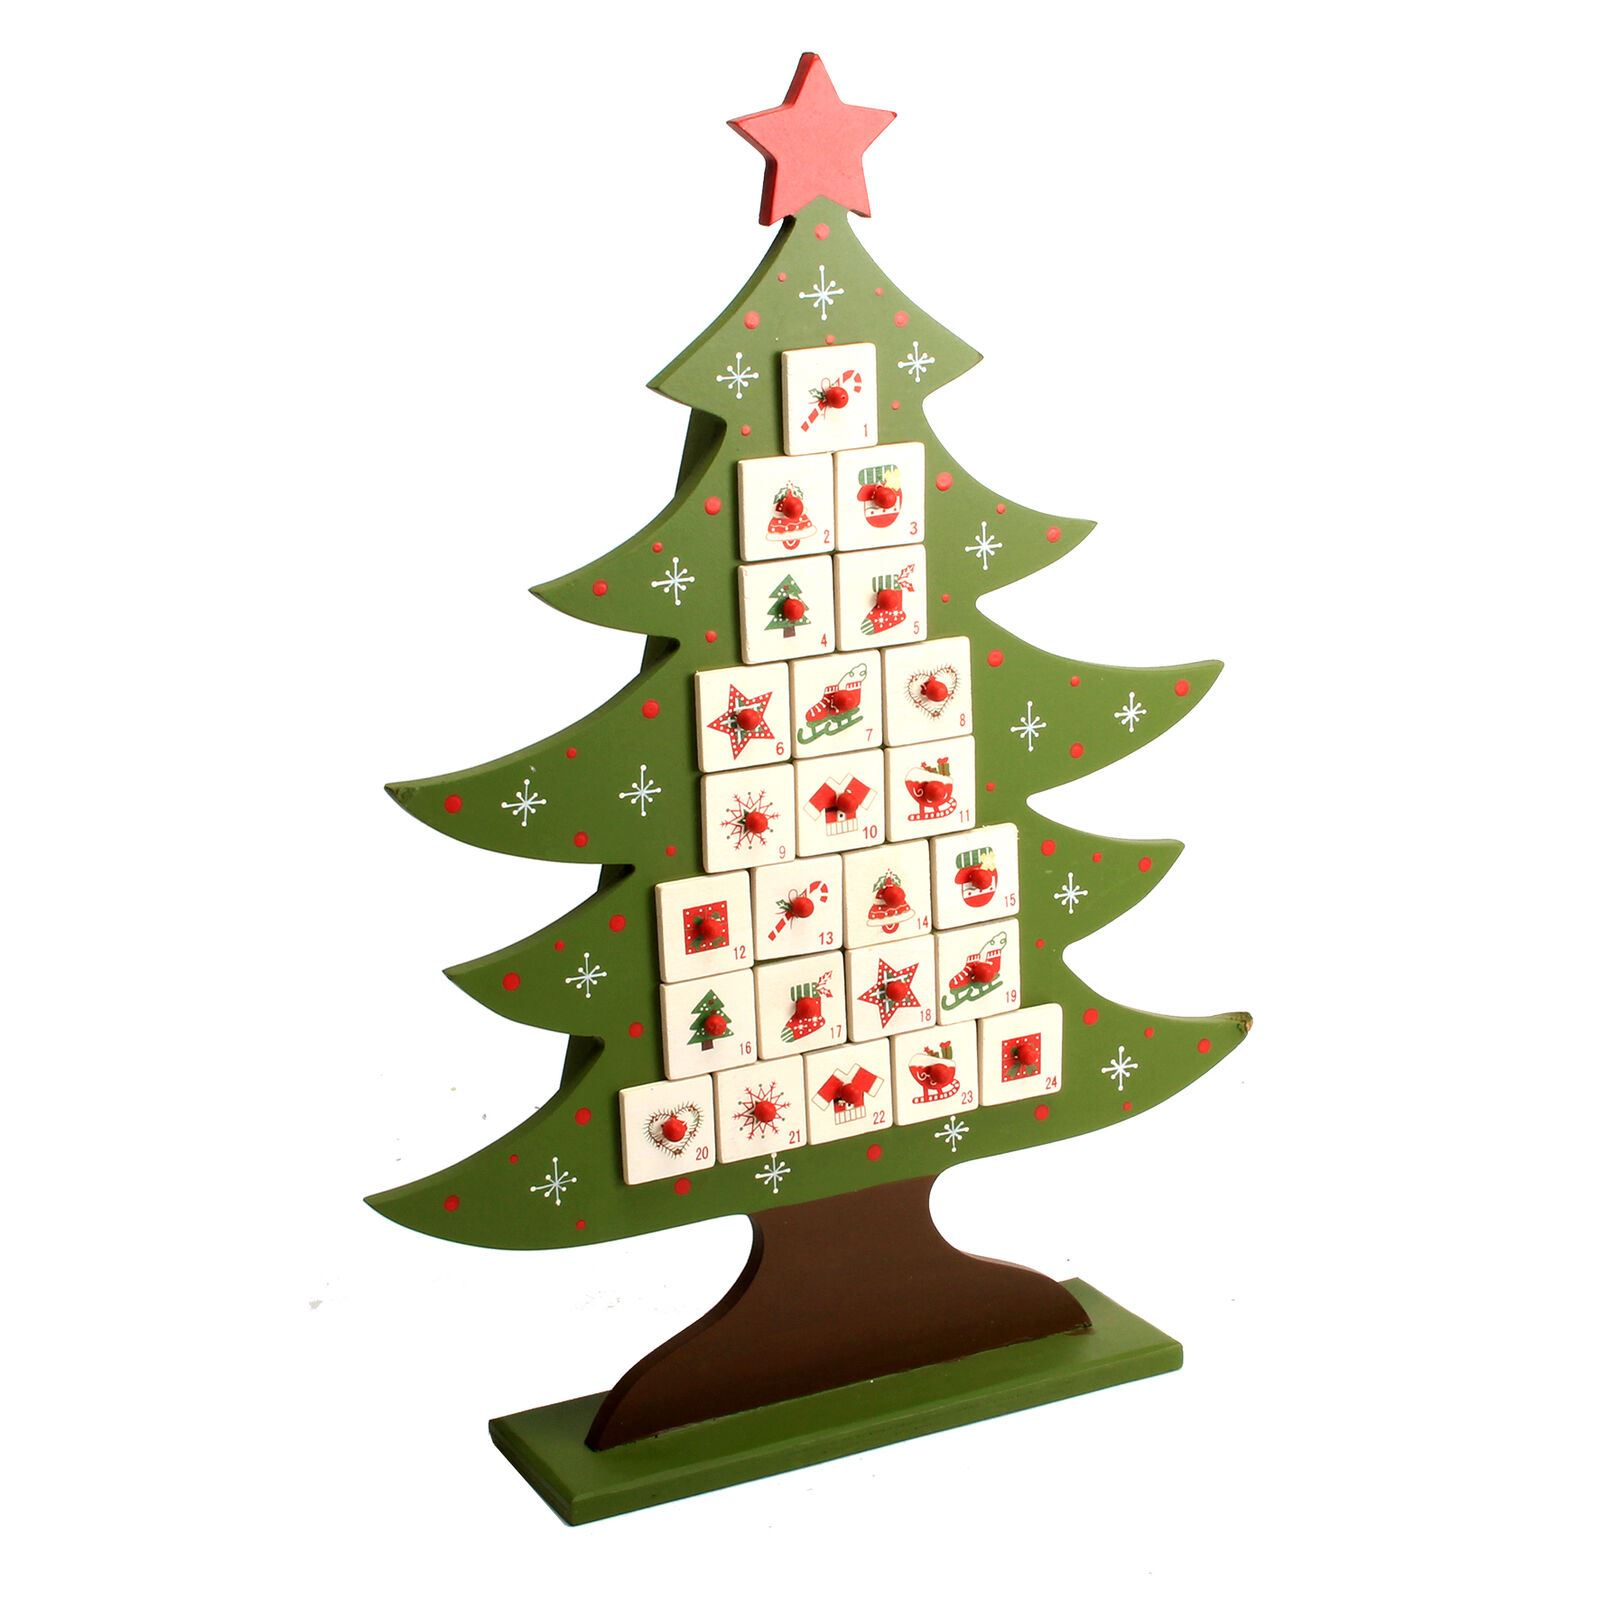 Whimsical Winter Wooden Tree Advent Calendar Christmas Decoration Kids Treats Ebay